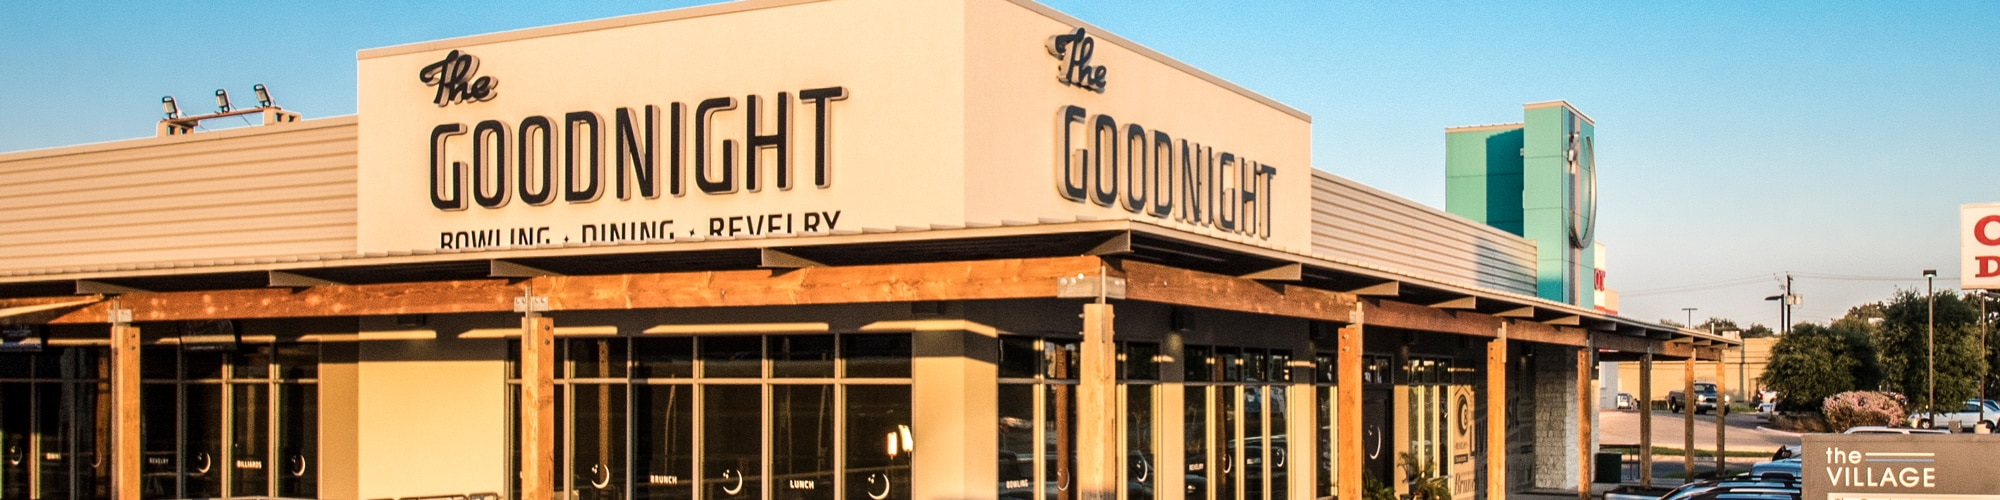 The Goodnight at The Village | 2700 W. Anderson Lane in Austin, Texas